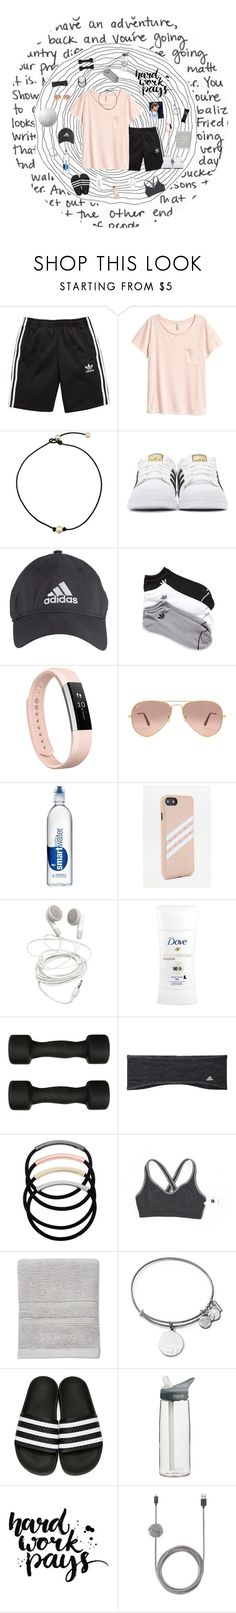 """❀; day 3"" by the-adventures-of-sydney ❤ liked on Polyvore featuring adidas Originals, adidas, Fitbit, Ray-Ban, Dove, Casall, L. Erickson, Gap, SONOMA Goods for Life and Alex and Ani"